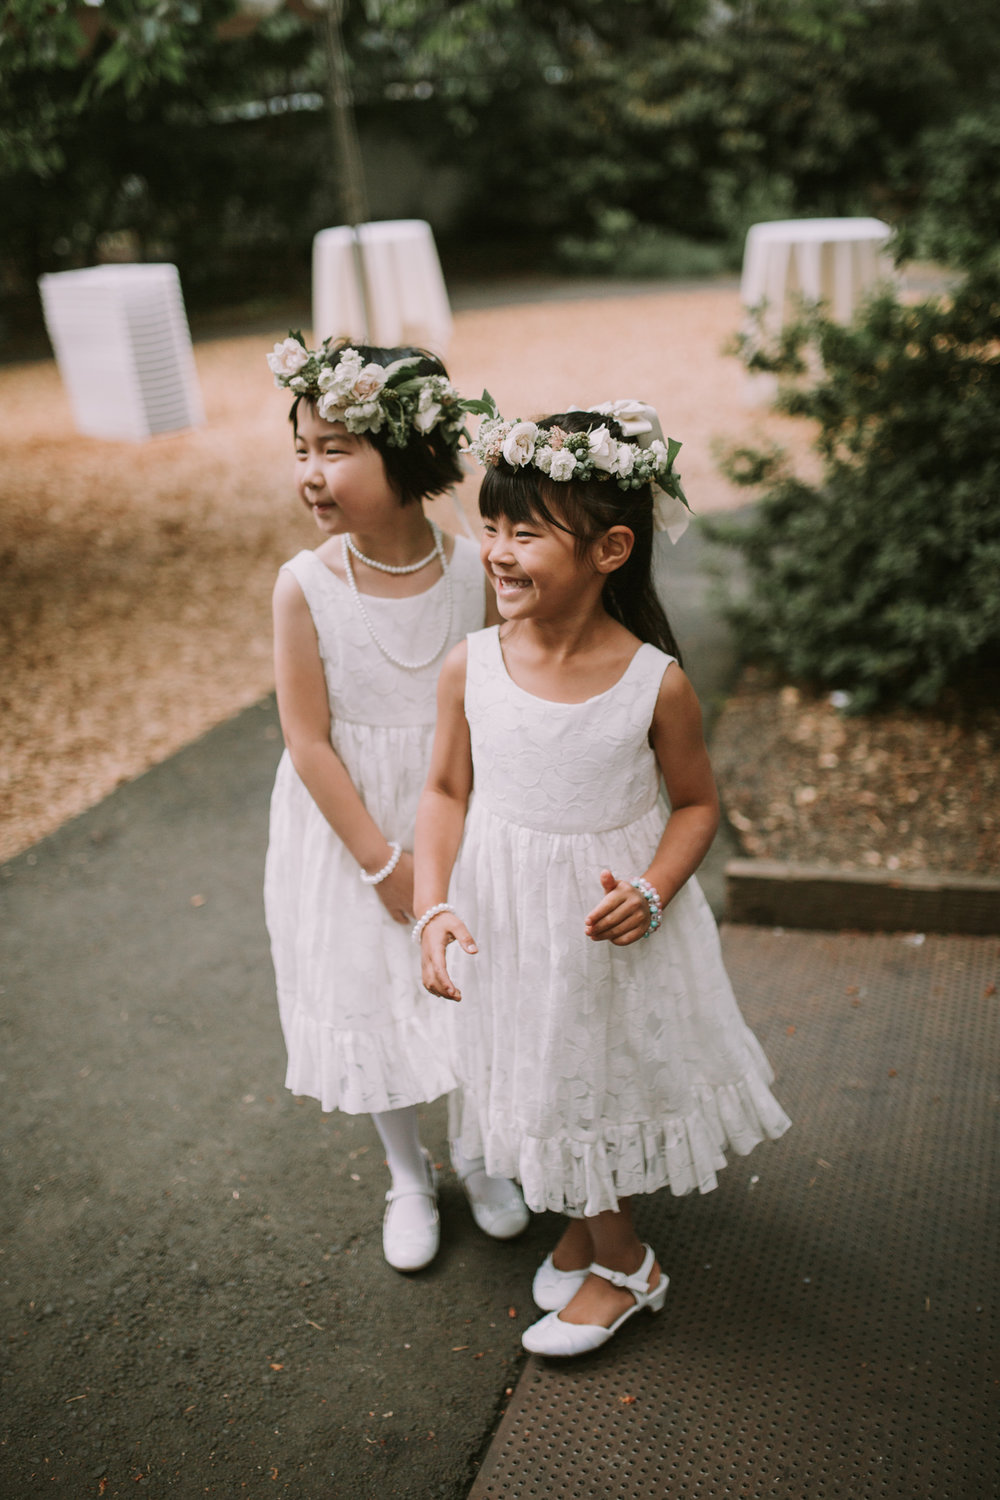 portland-oregon-wedding-flowers-upscale-flowergirl-crown.jpg